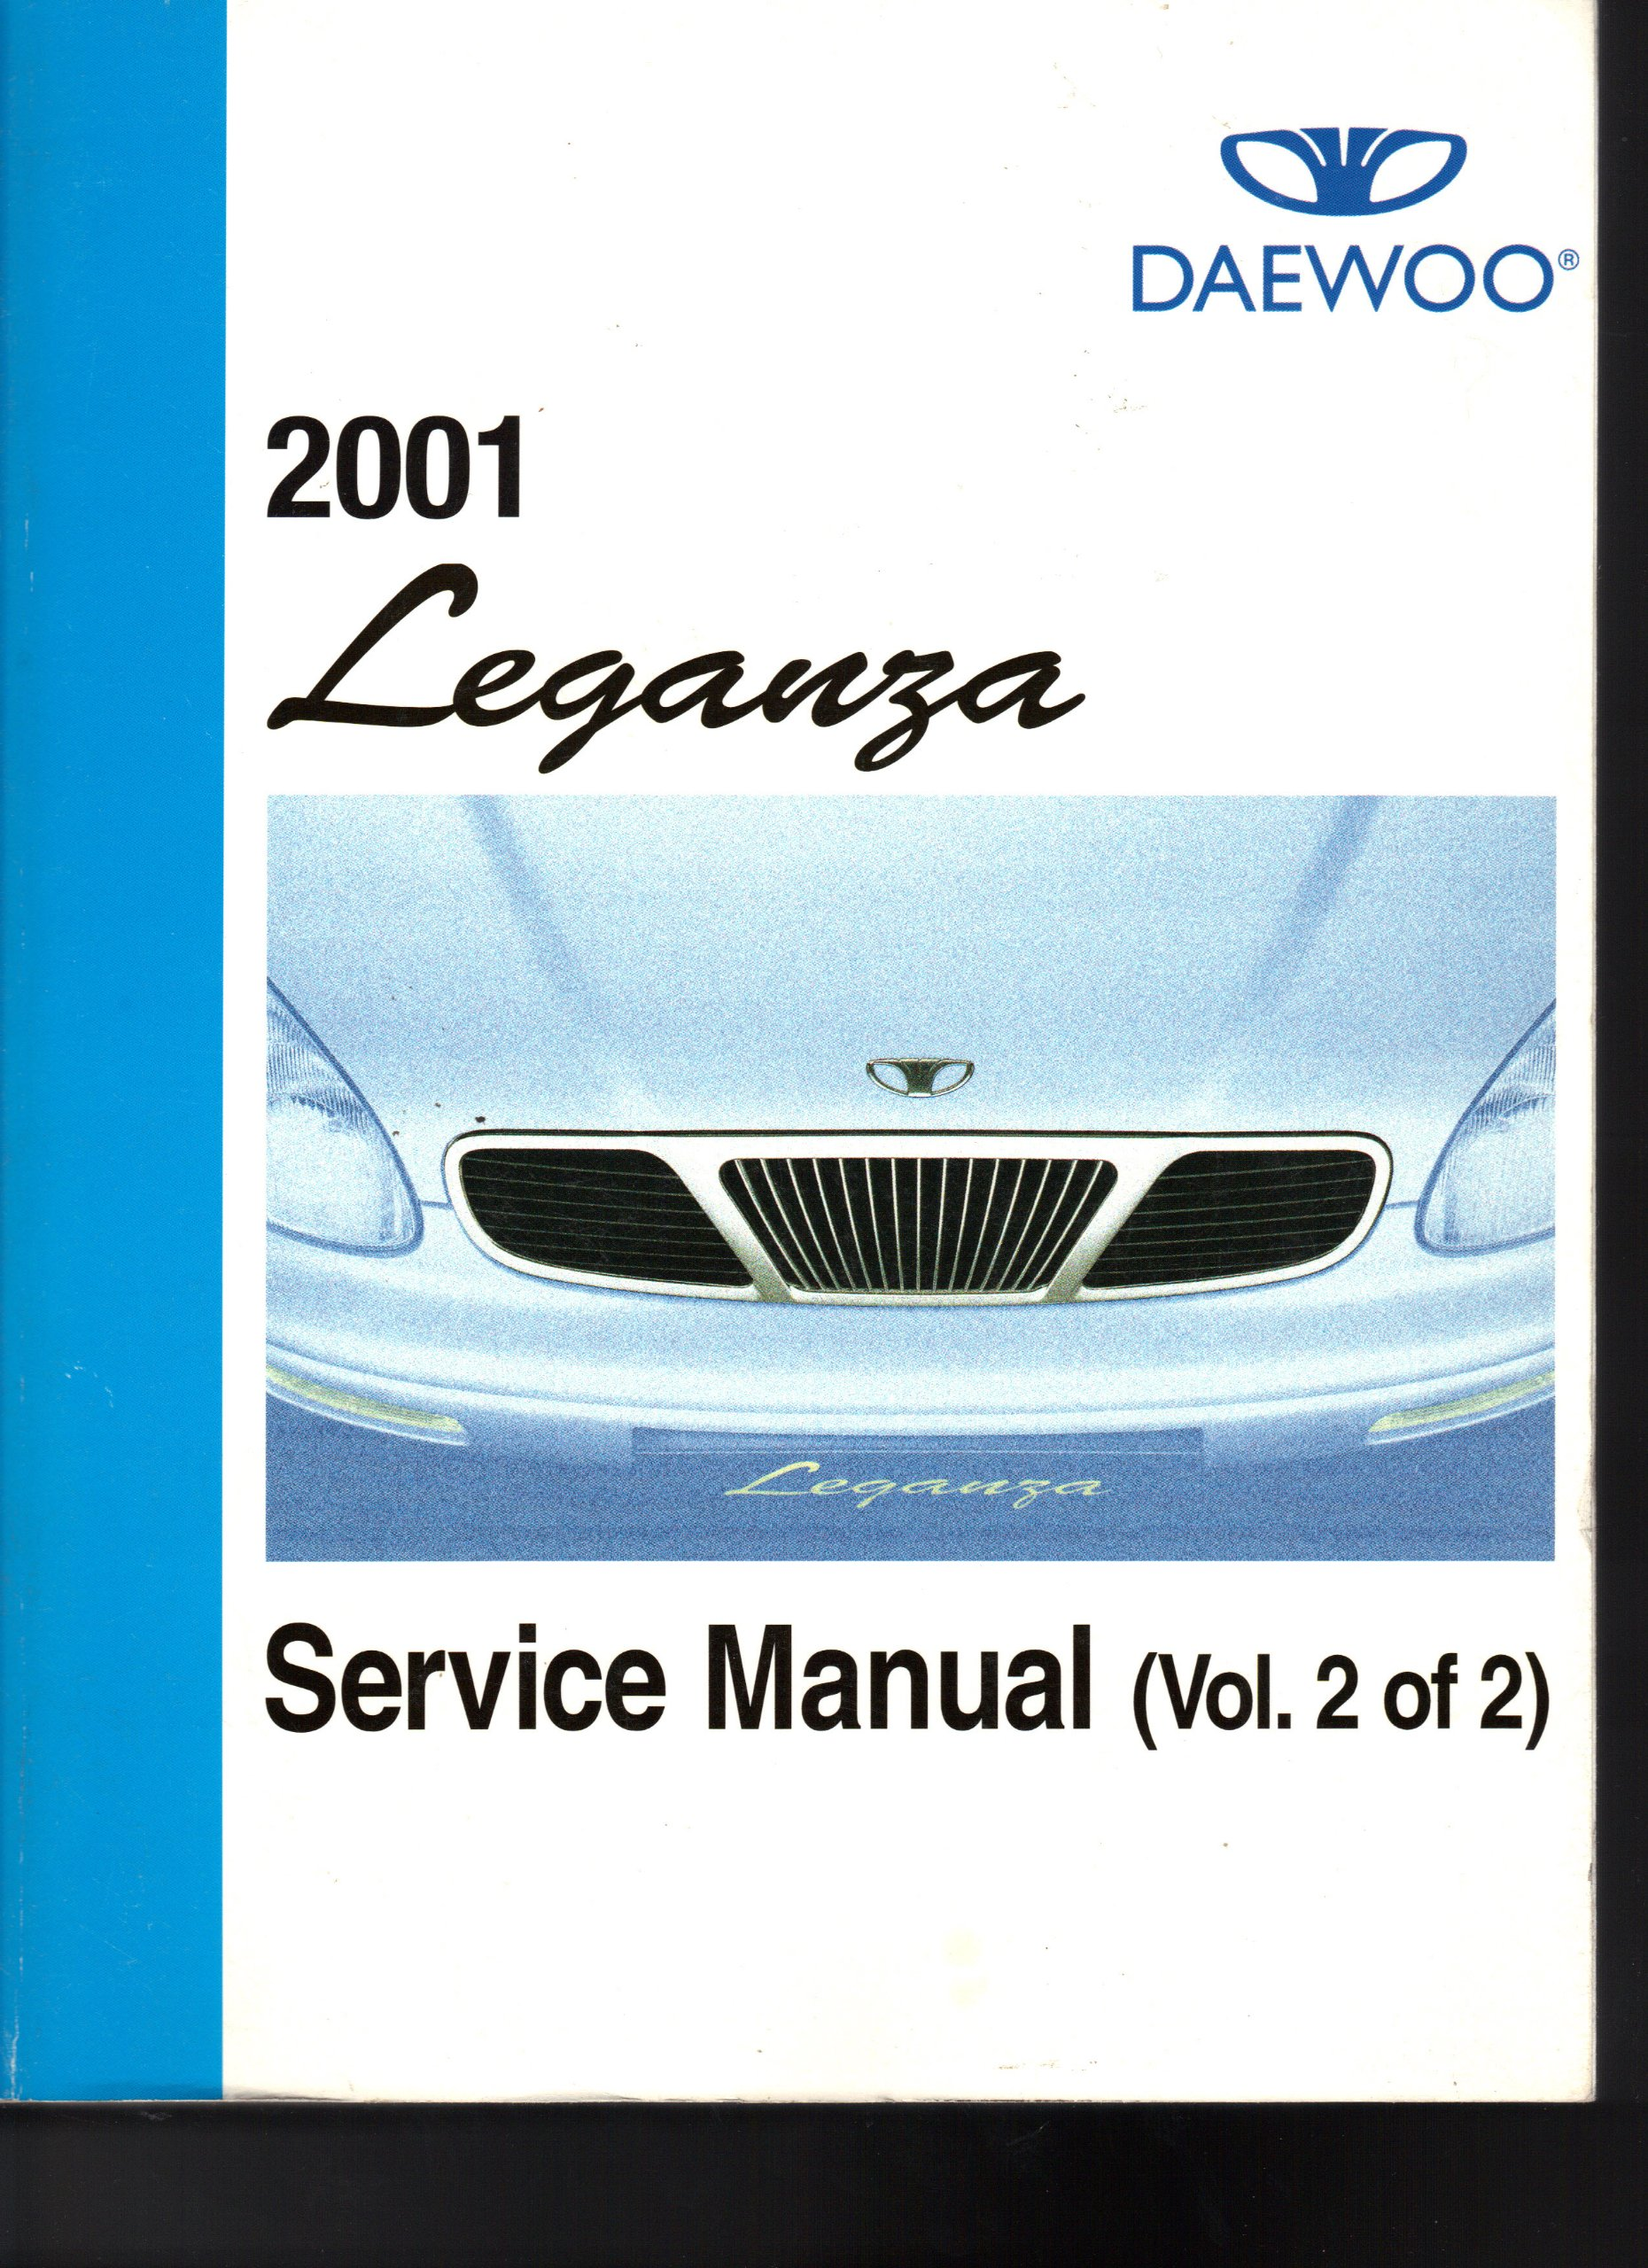 Service Manuals (Volumes 1 and 2) 2001 Leganza (UPV010-800): Daewoo:  Amazon.com: Books